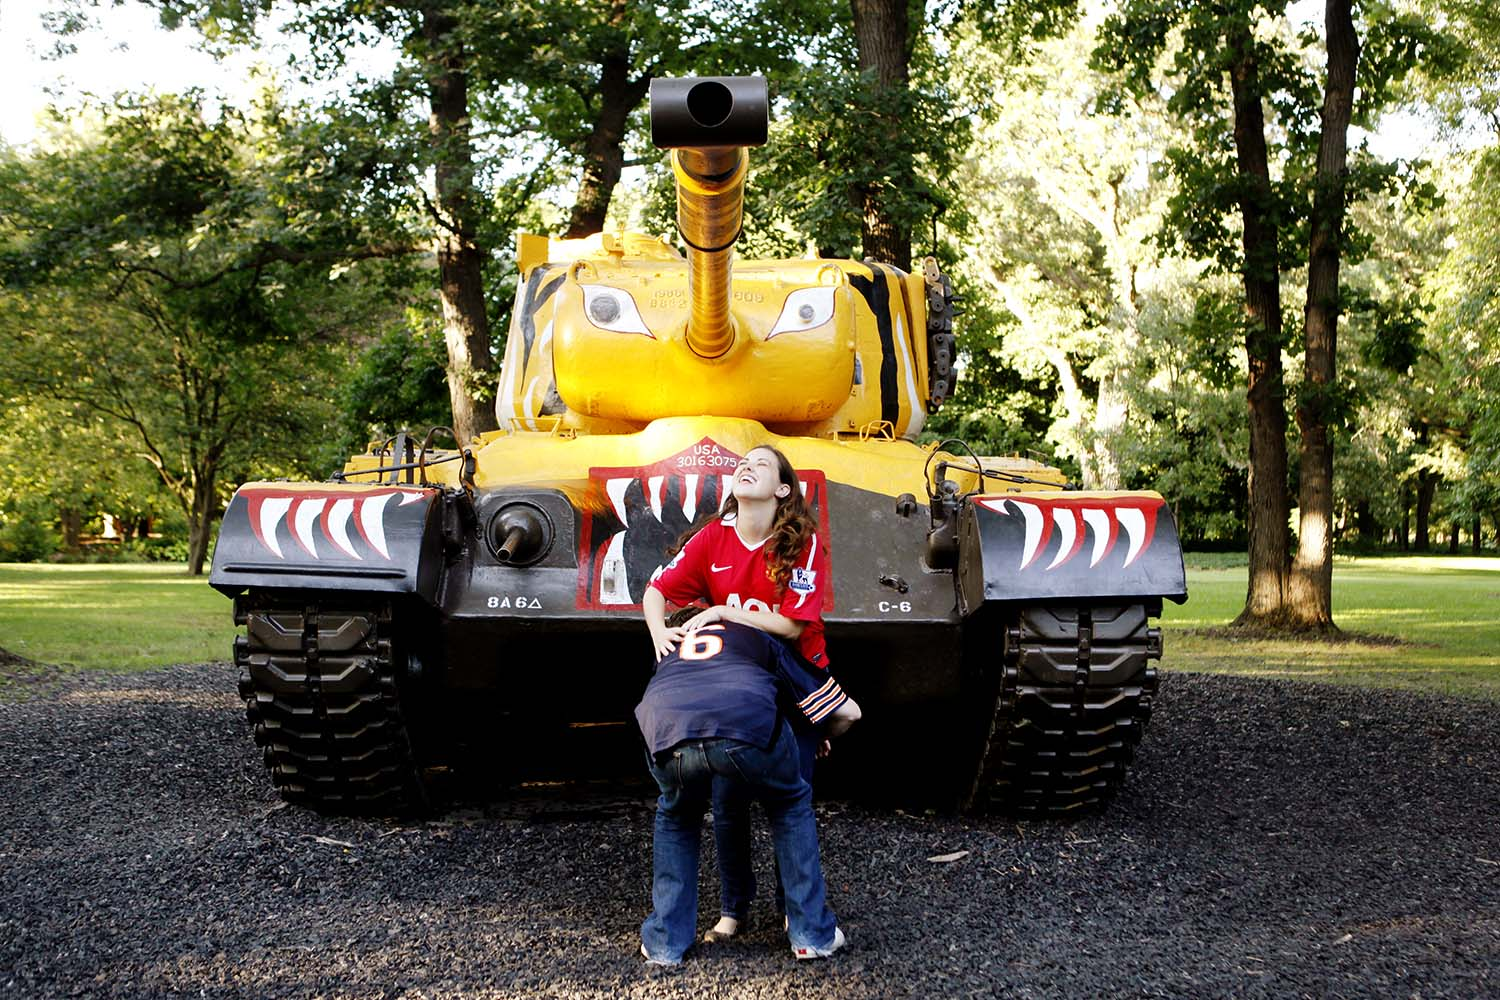 Cantigny First Military tanks museum engagement photography, Illinois, engaged, summer, day, sunny, Katie & Mike, spring, fun, funny, silly, cute, photos, yellow, painted